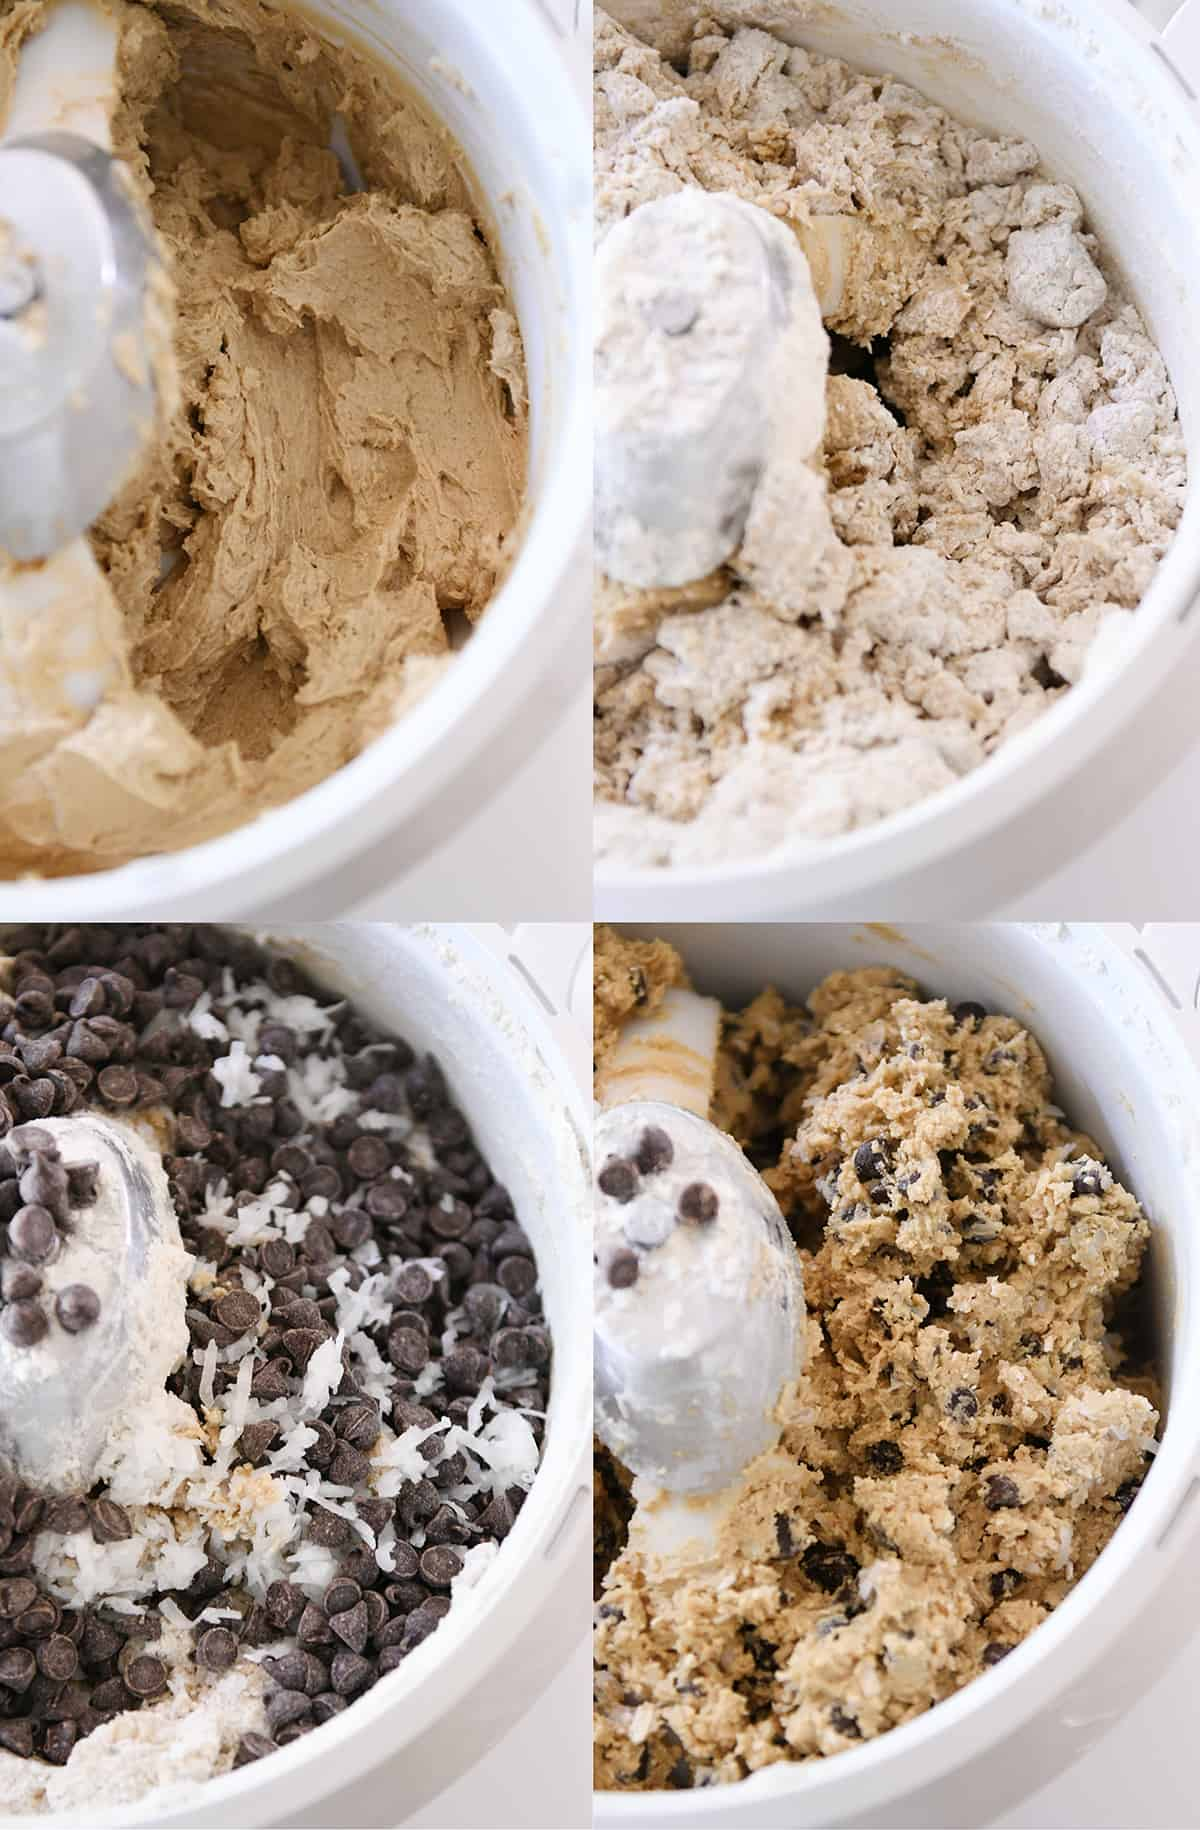 Collage of cookie dough being made with dry ingredients and chocolate chips added in.